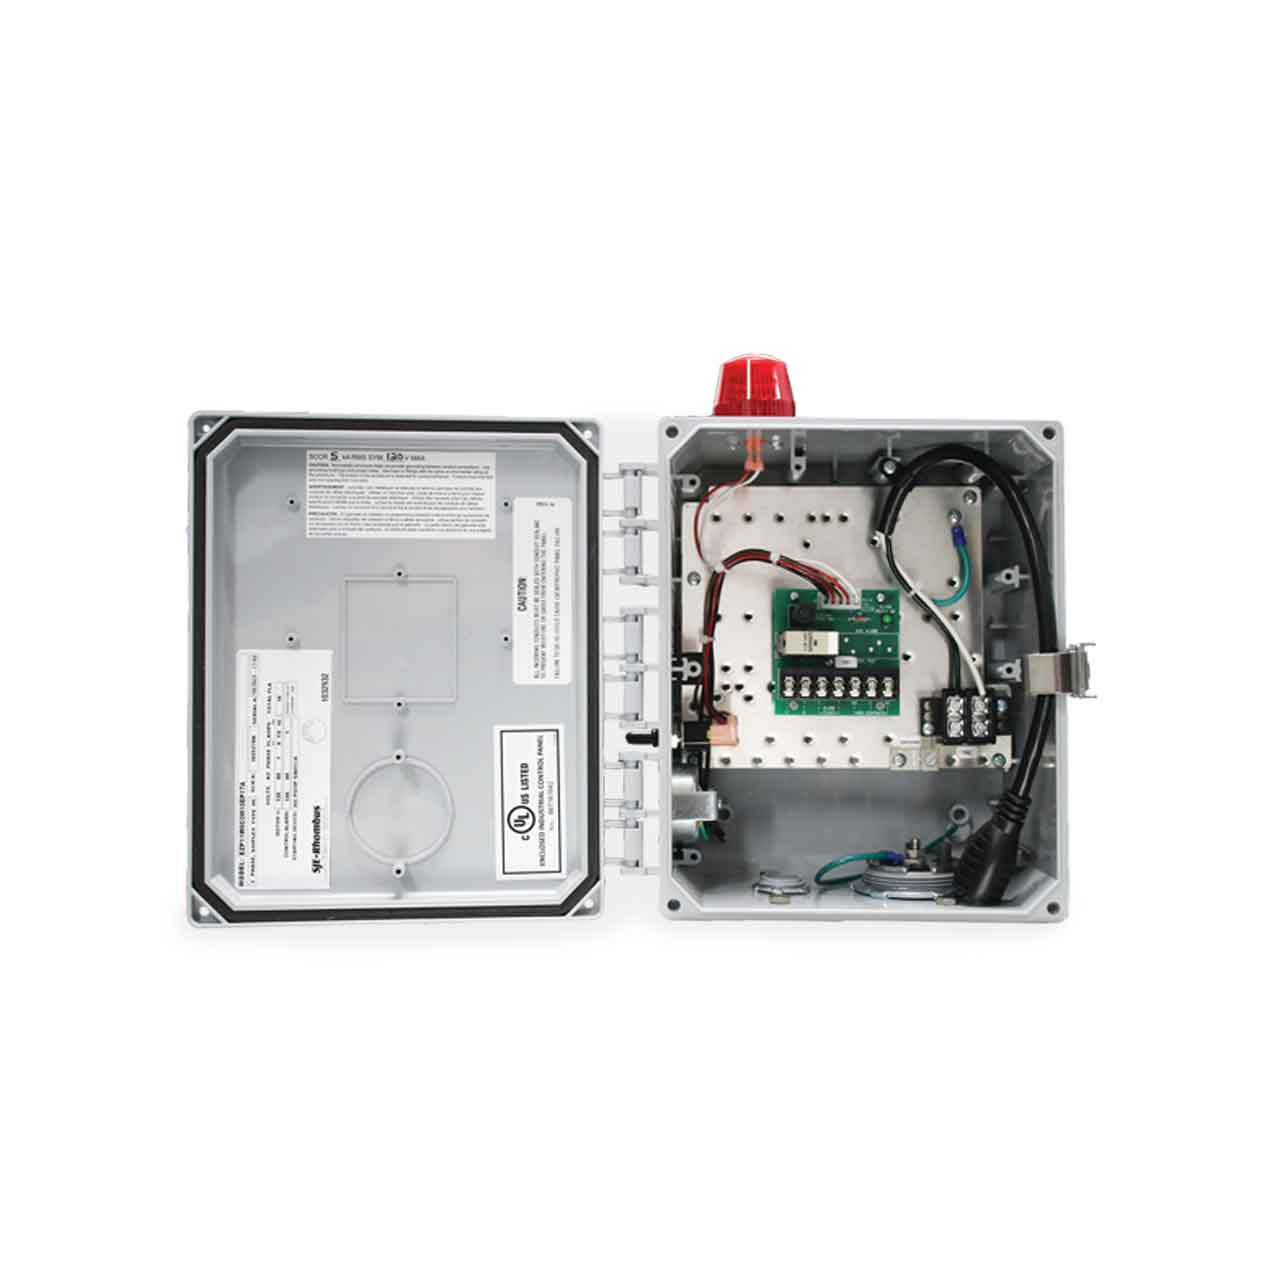 sje rhombus ezp series plugger plug in pump control panel Residential Septic Lift Station Wiring